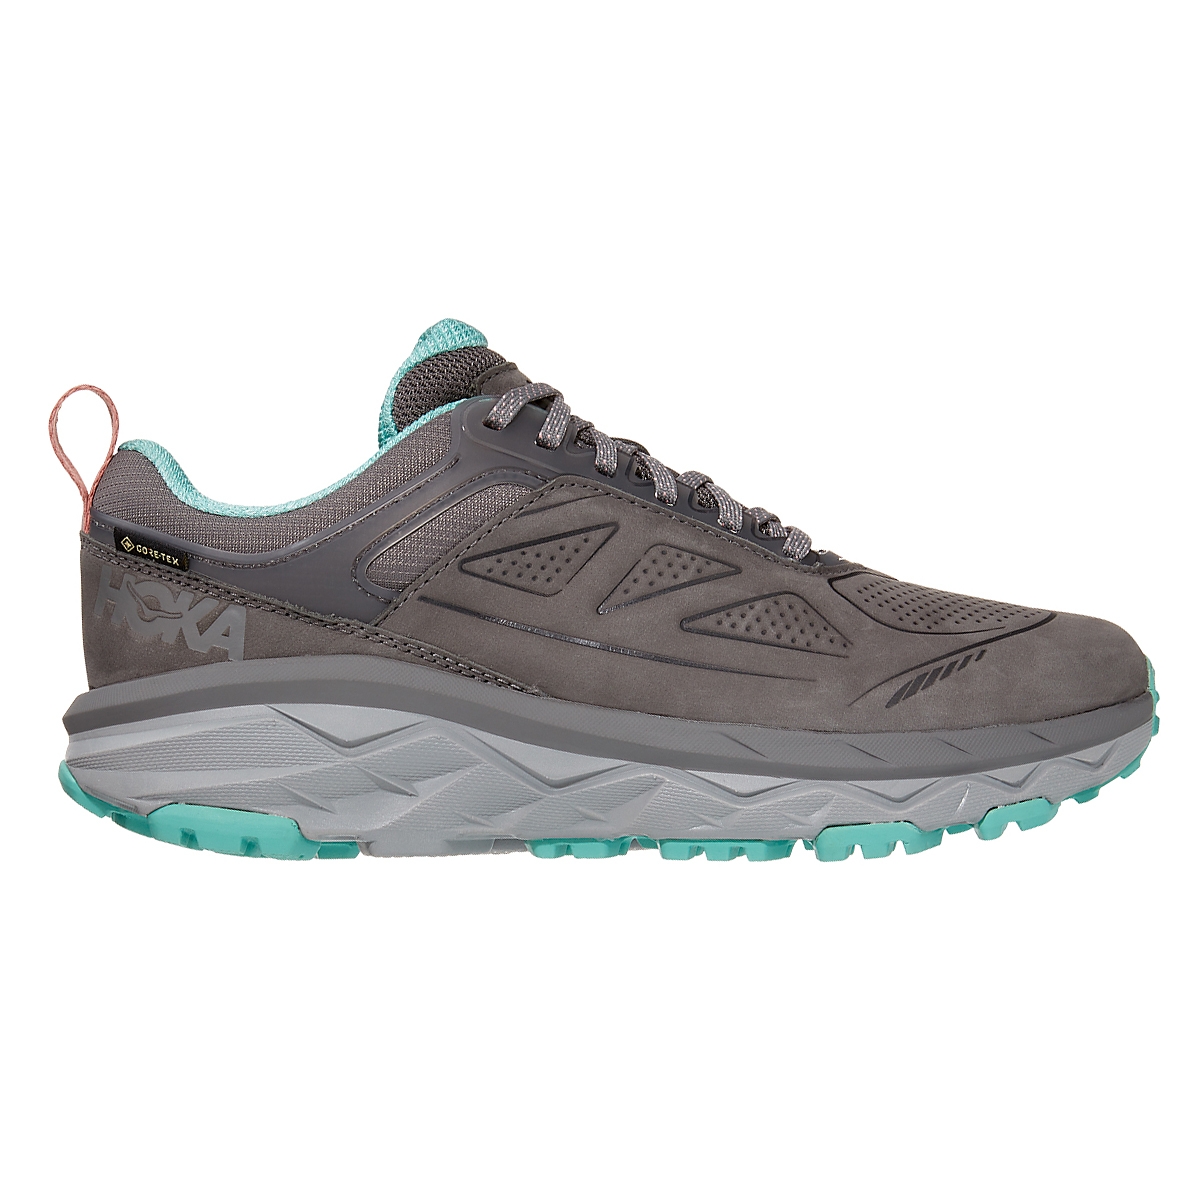 Women's Hoka One One Challenger Low Gore-Tex Trail Running Shoe, , large, image 1